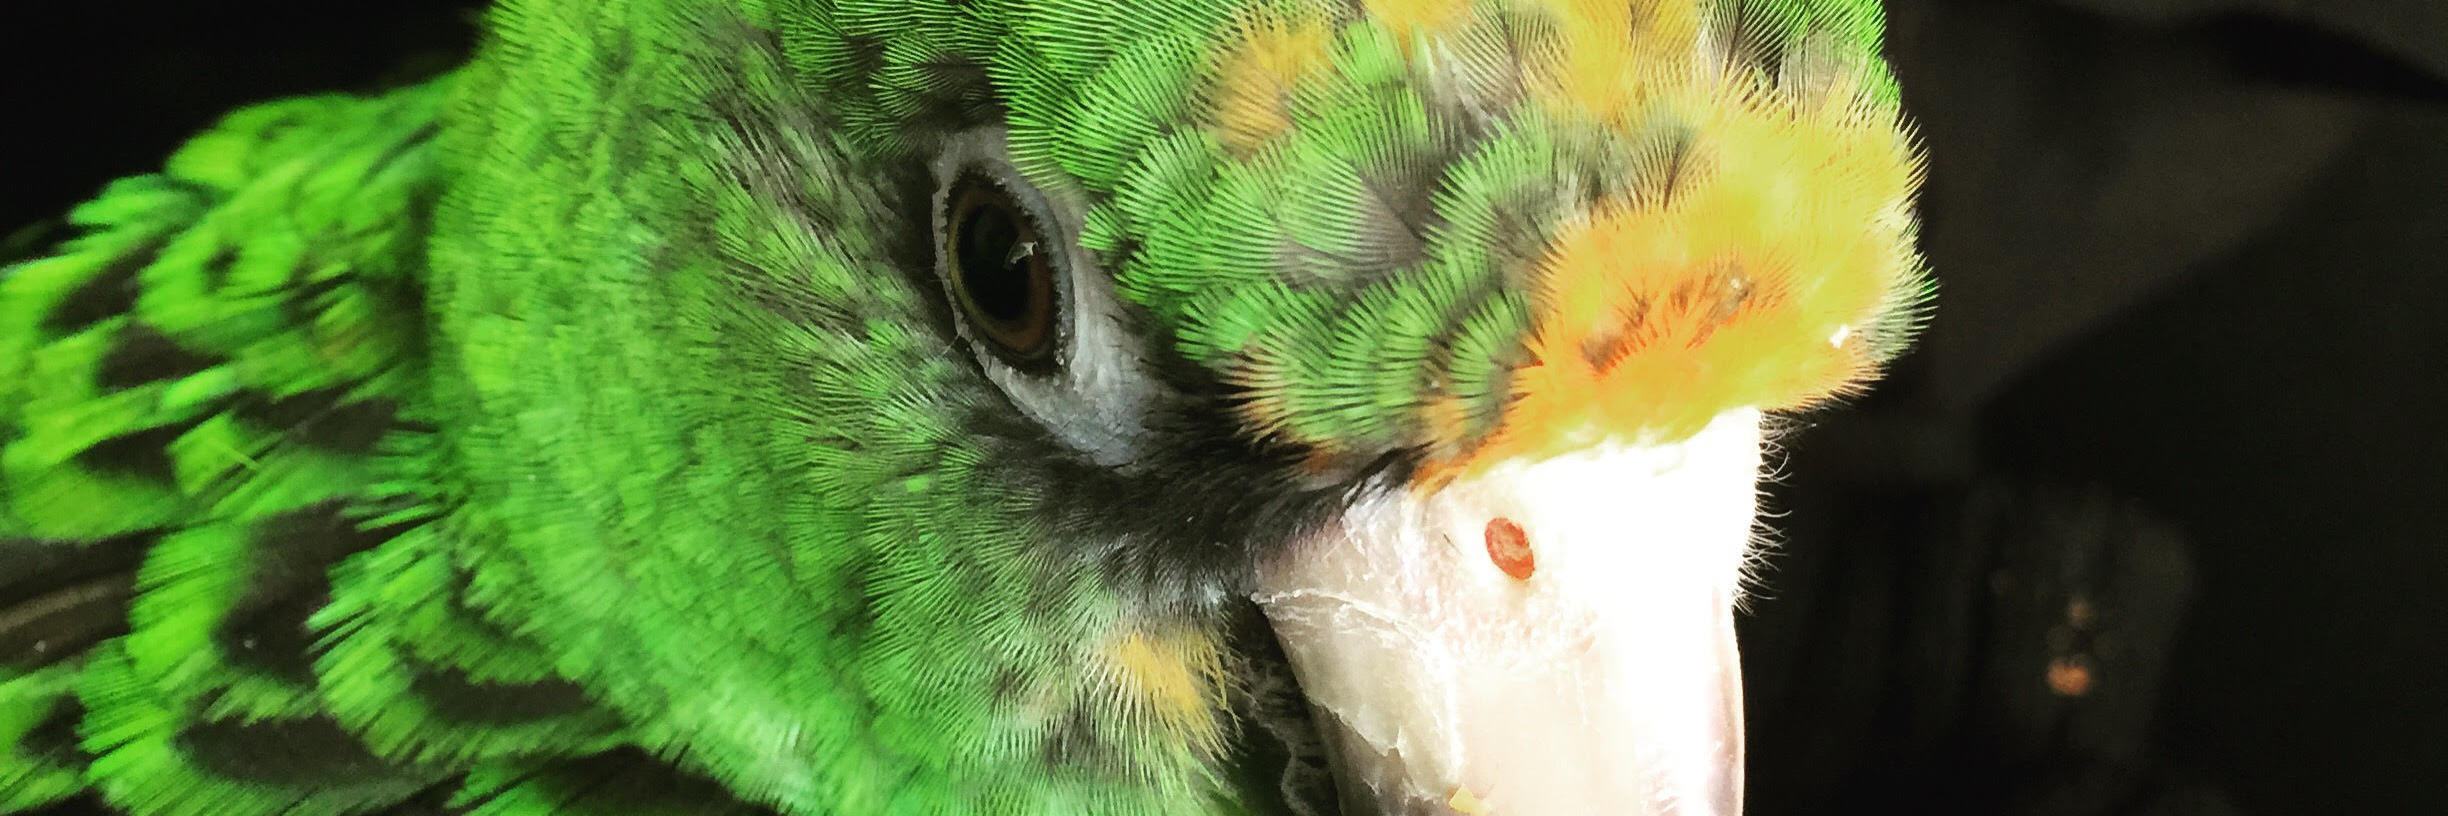 green parrot named ziggy